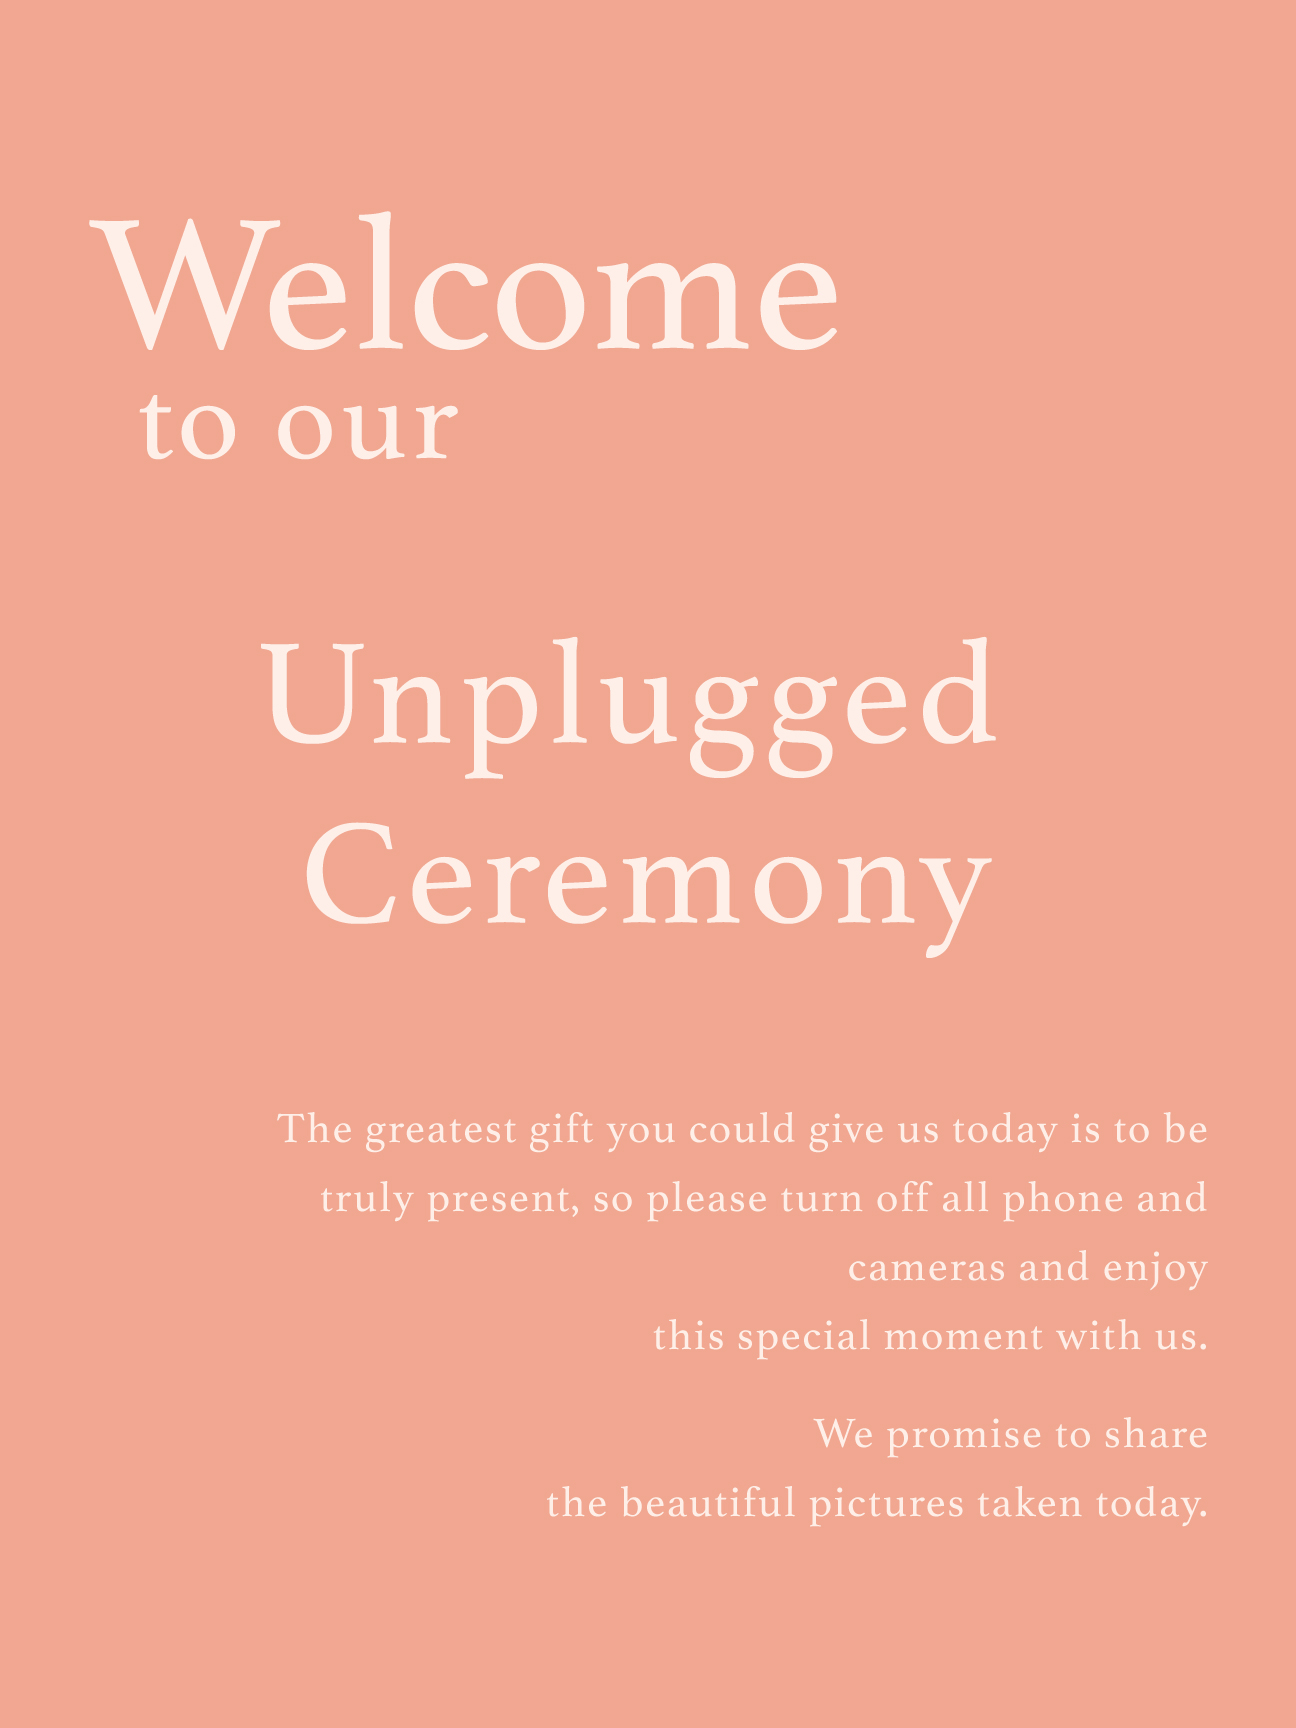 Unplugged Welcome Sign -  All colours fully customizable